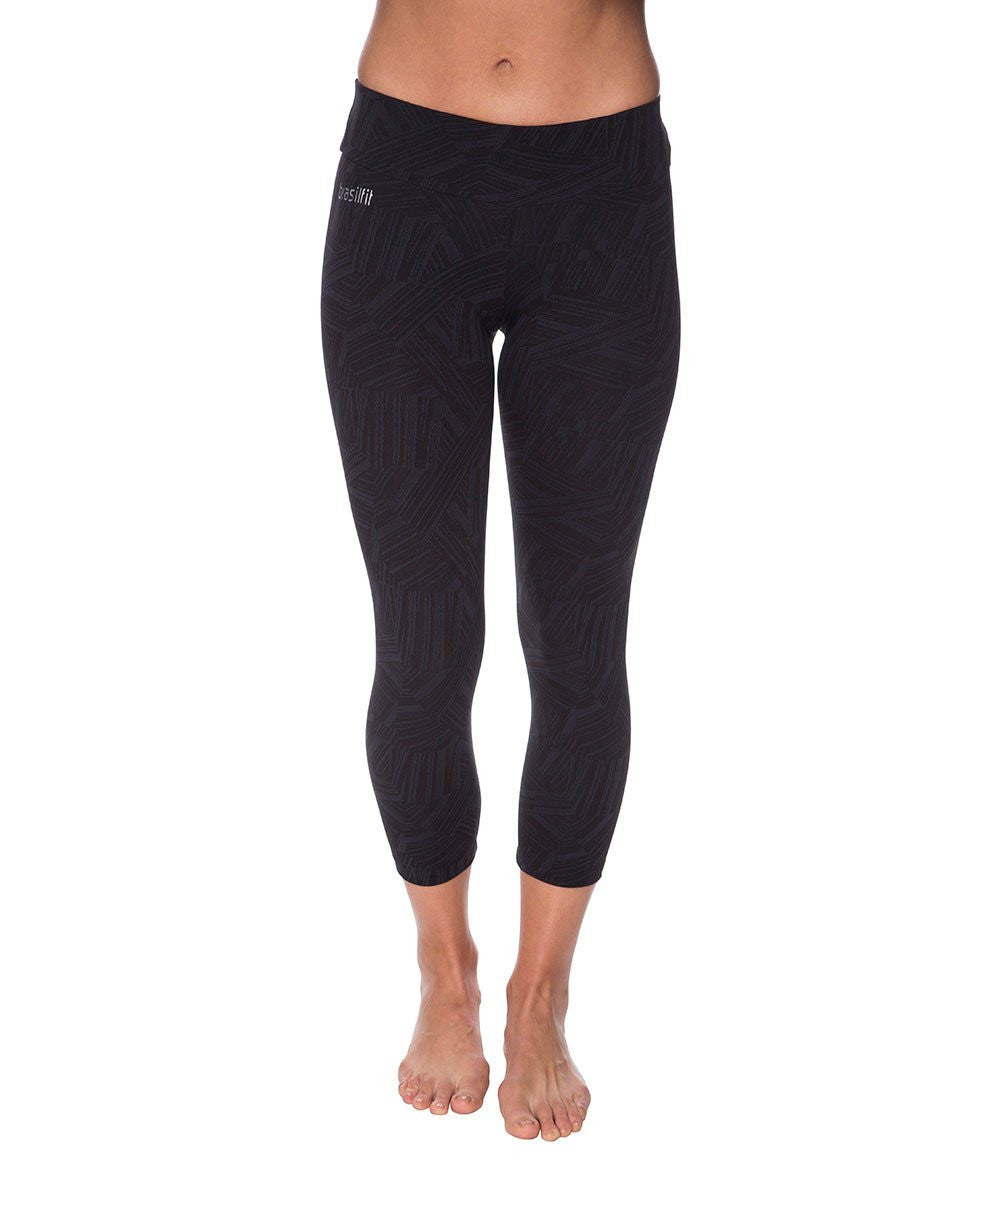 Side view product image for Brasilfit Faith Calf Length activewear leggings.  Faith leggings are part of our textured activewear legging collection that is focused on performance, high compression activewear.